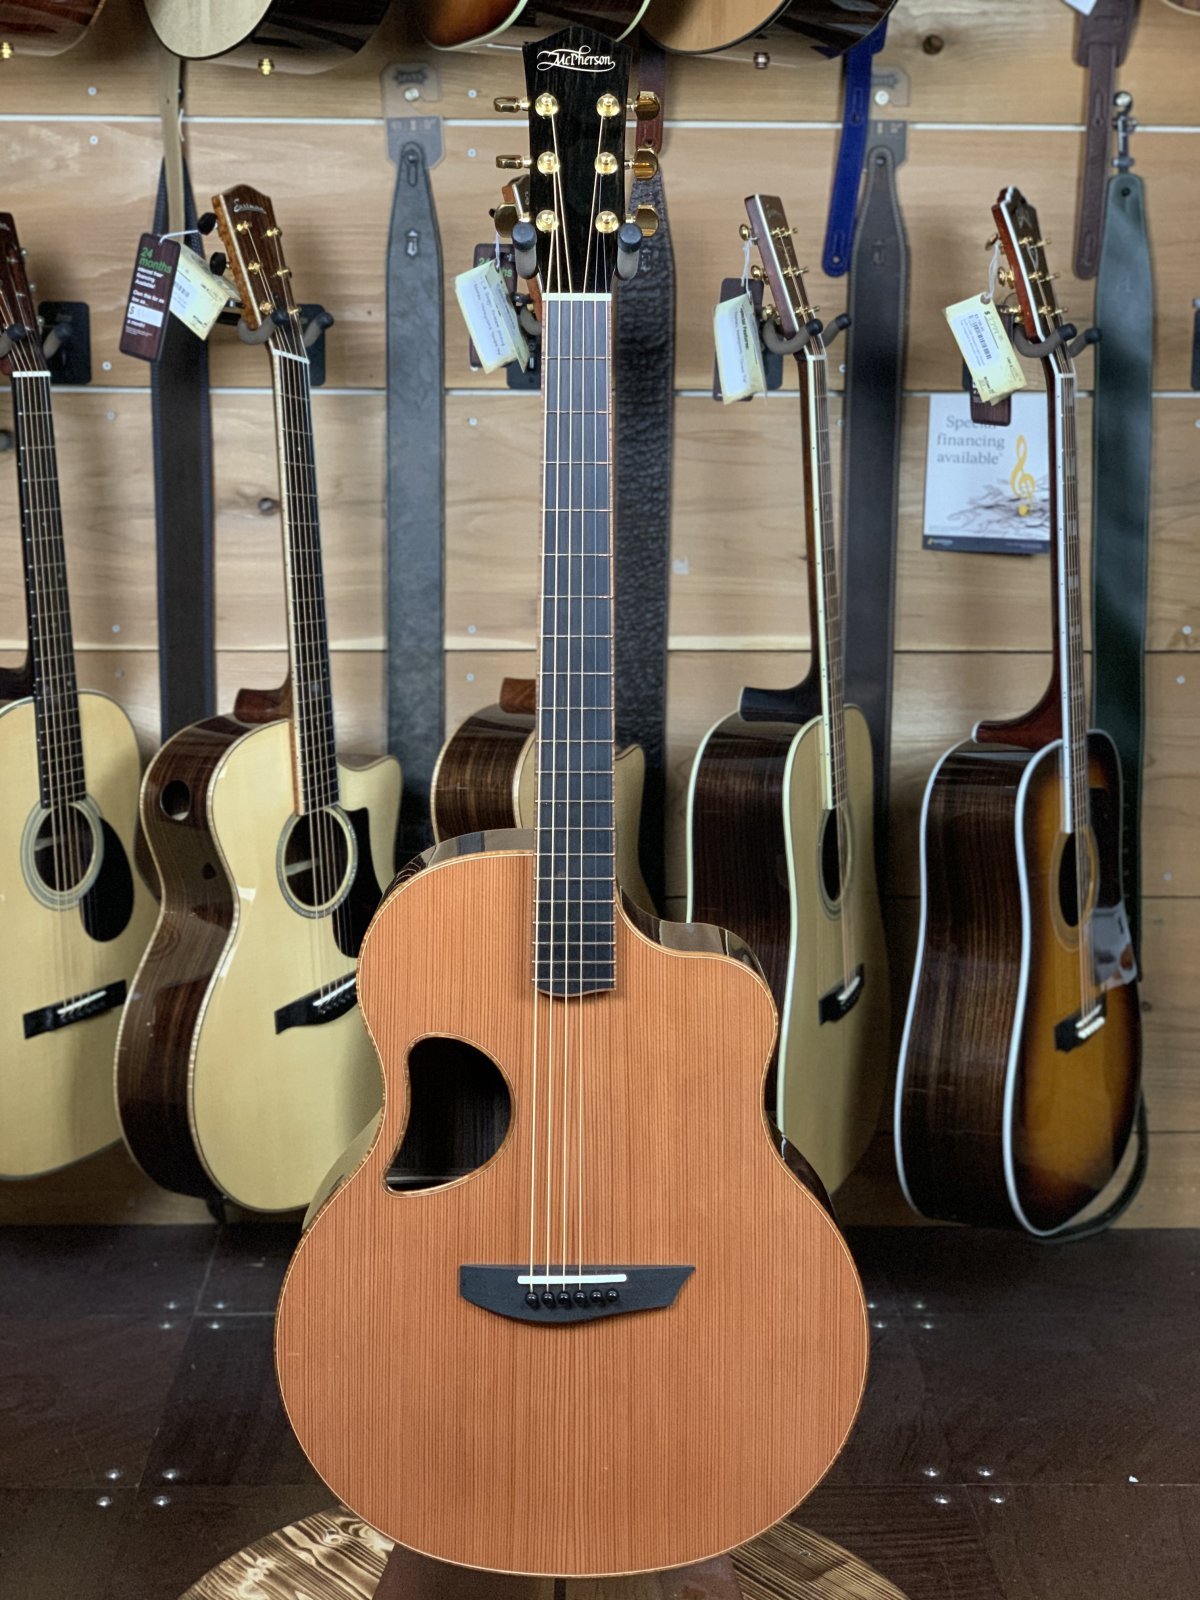 McPherson Standard MGS 4.5 California Redwood Top, Indian Rosewood Back & Sides #2605